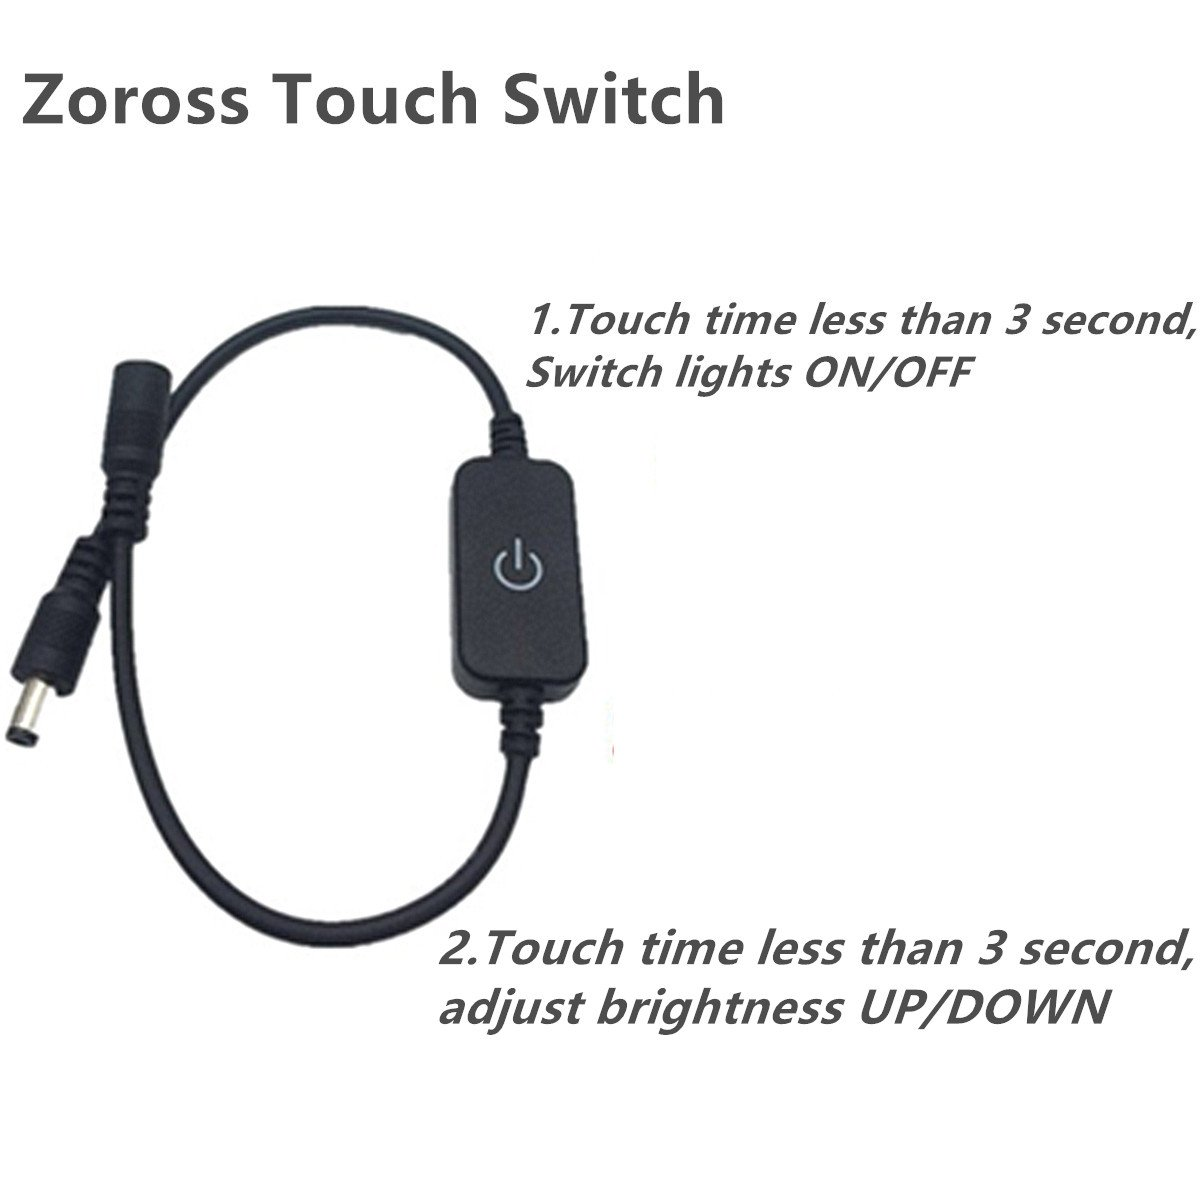 Zoross Touch Switch Bed Lights Led Strip Light Kit White Color 300LEDs on 16.4Ft (5M) Mirror Light 3A Power Supply for House Decoration Armoire and Bed Lighting (White) by Zoross (Image #3)